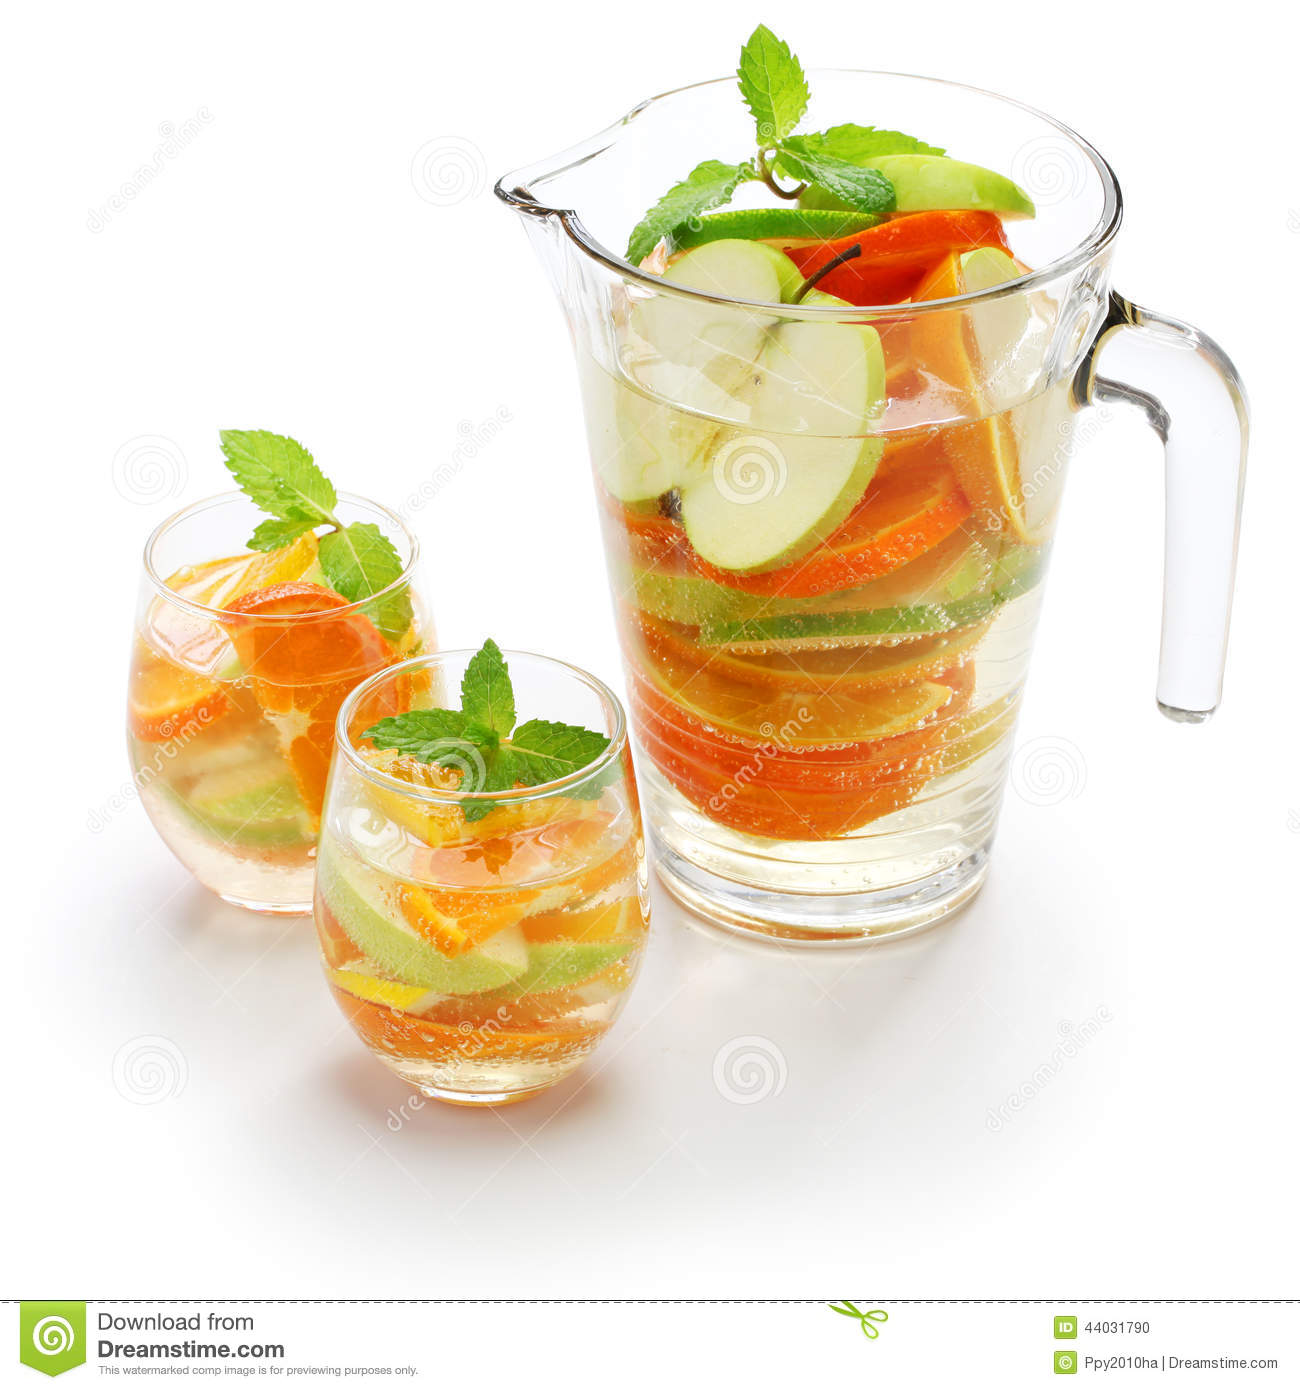 Sangria Blanca, White Sangria Stock Photo - Image: 44031790